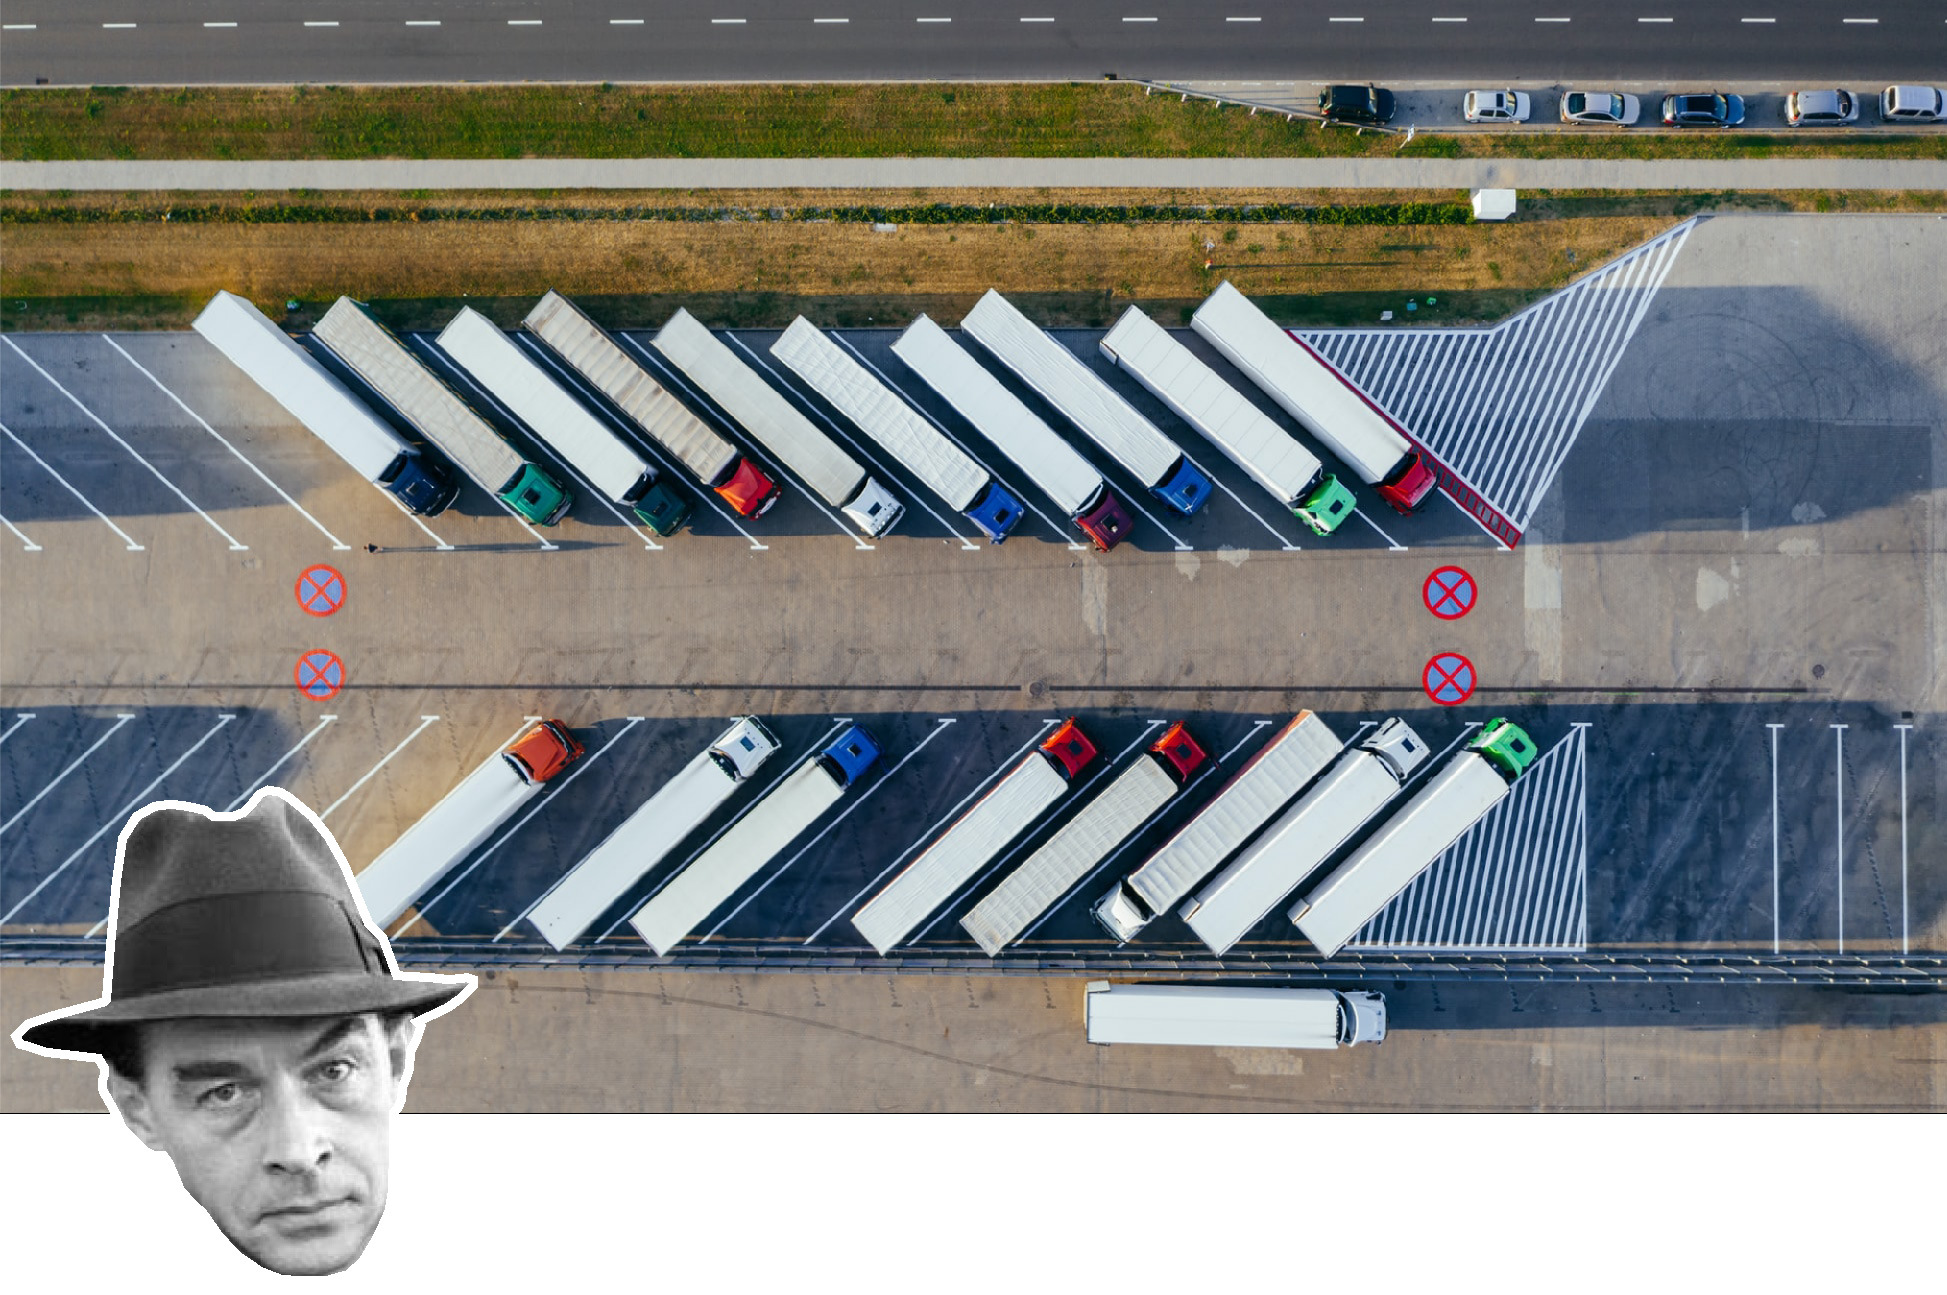 Parallel trucks (image by Unsplash